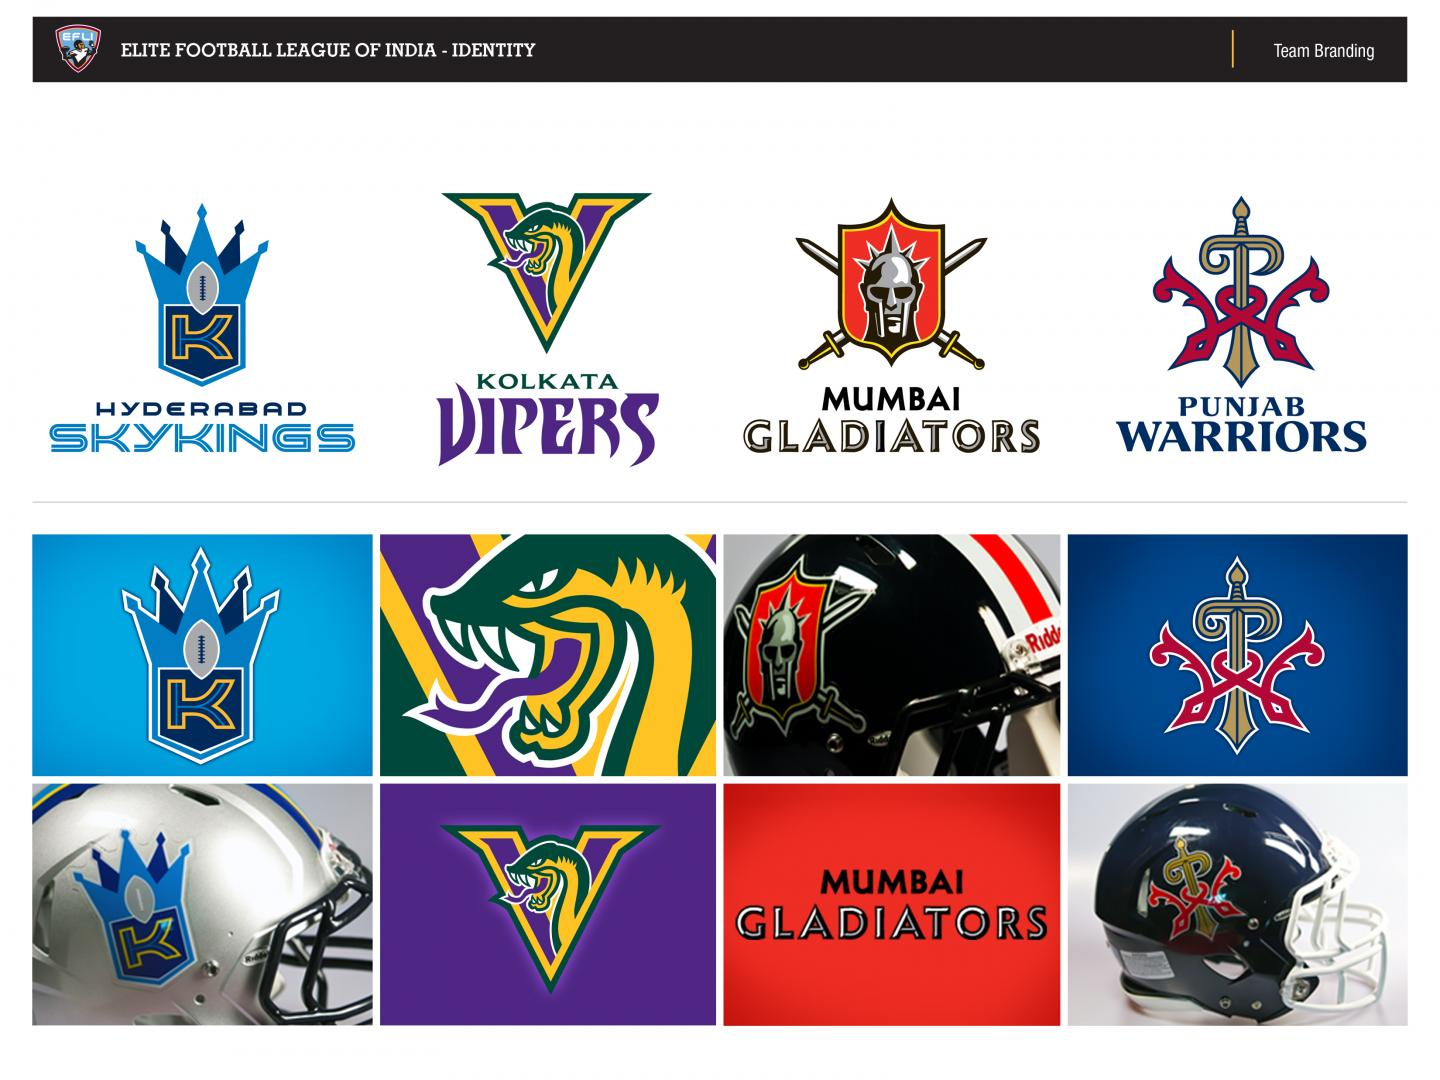 Elite Football League of India Brand Identity Thumbnail